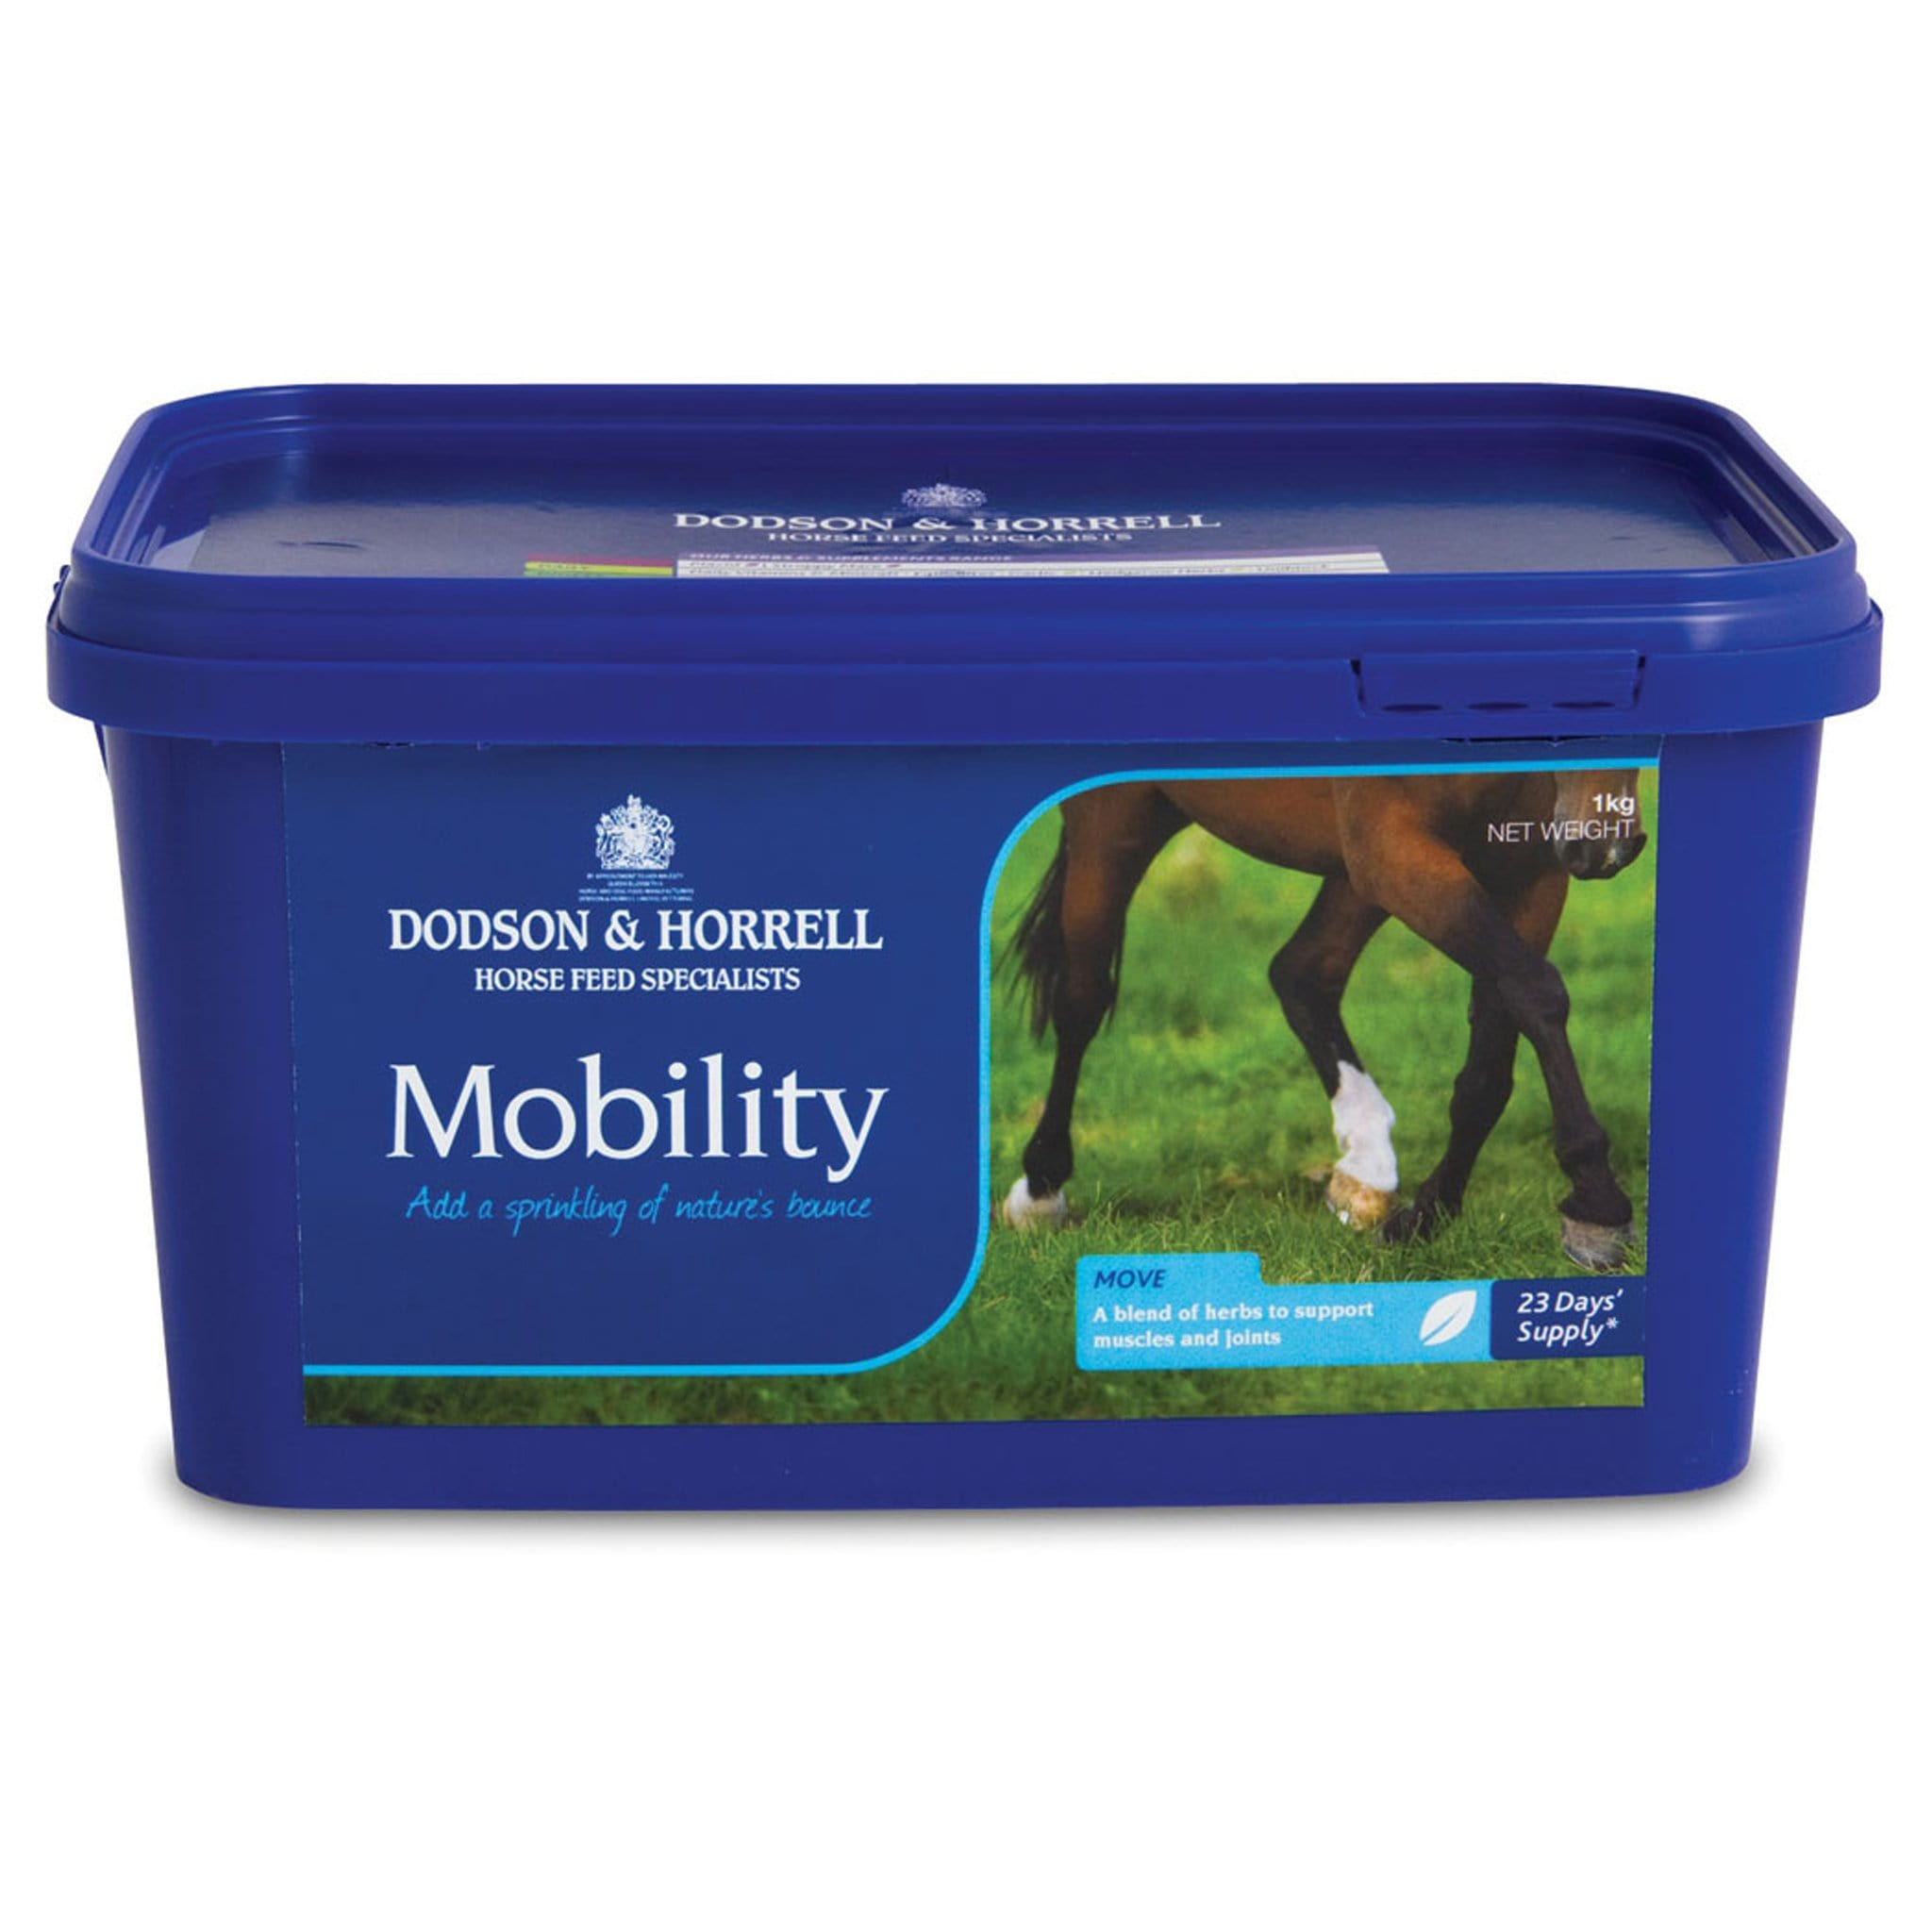 Dodson and Horrell Mobility 1100